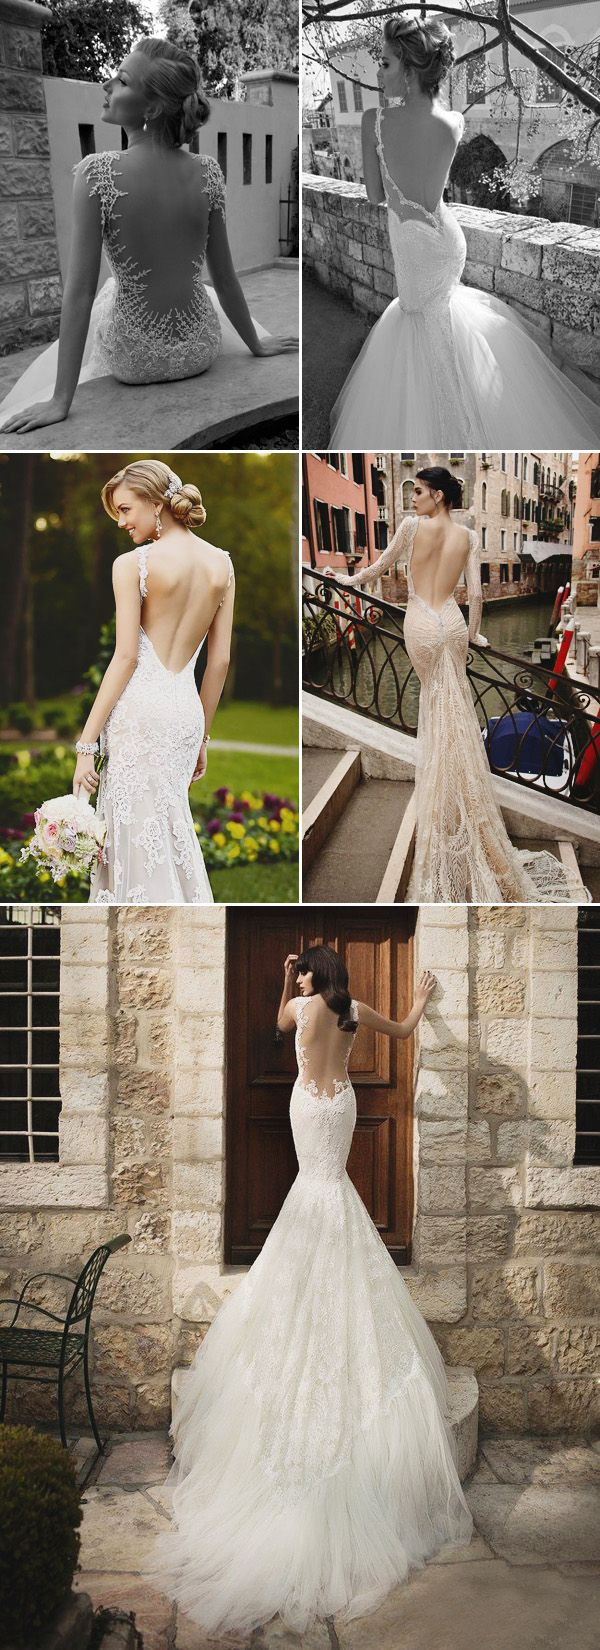 Sexy Deep V-shape Backless Mermaid Wedding Dresses 2015 trends